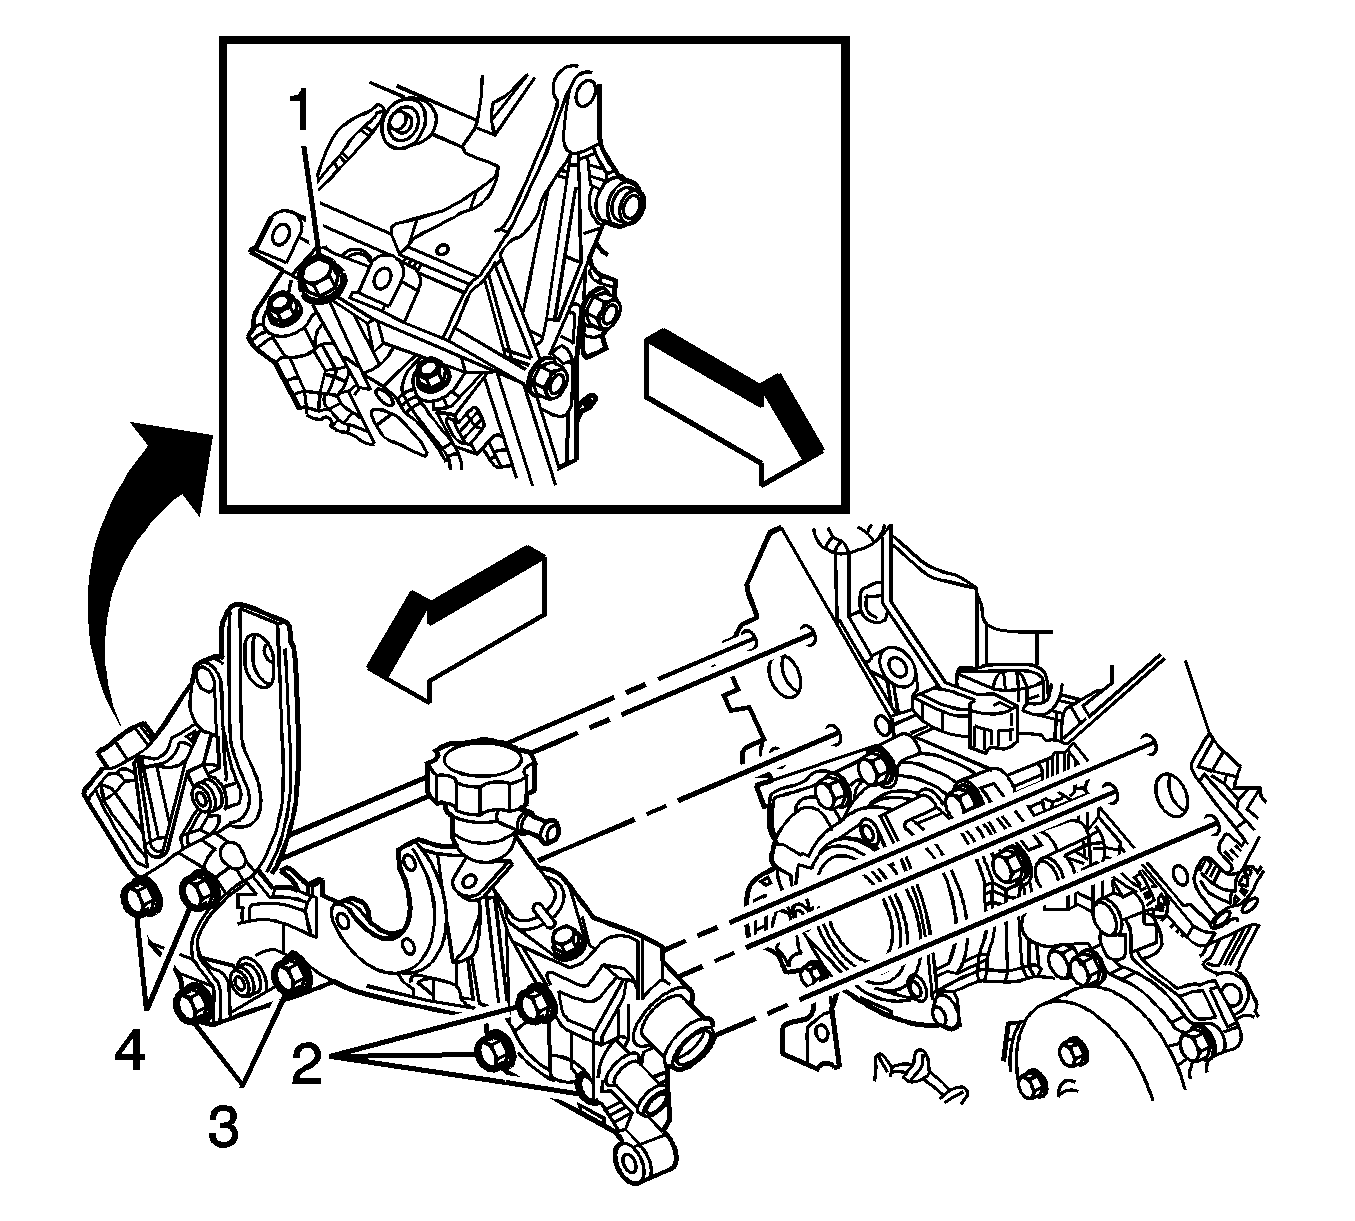 06 Chevy Impala V6 Engine Diagram 06 Free Engine Image For User Manual Download